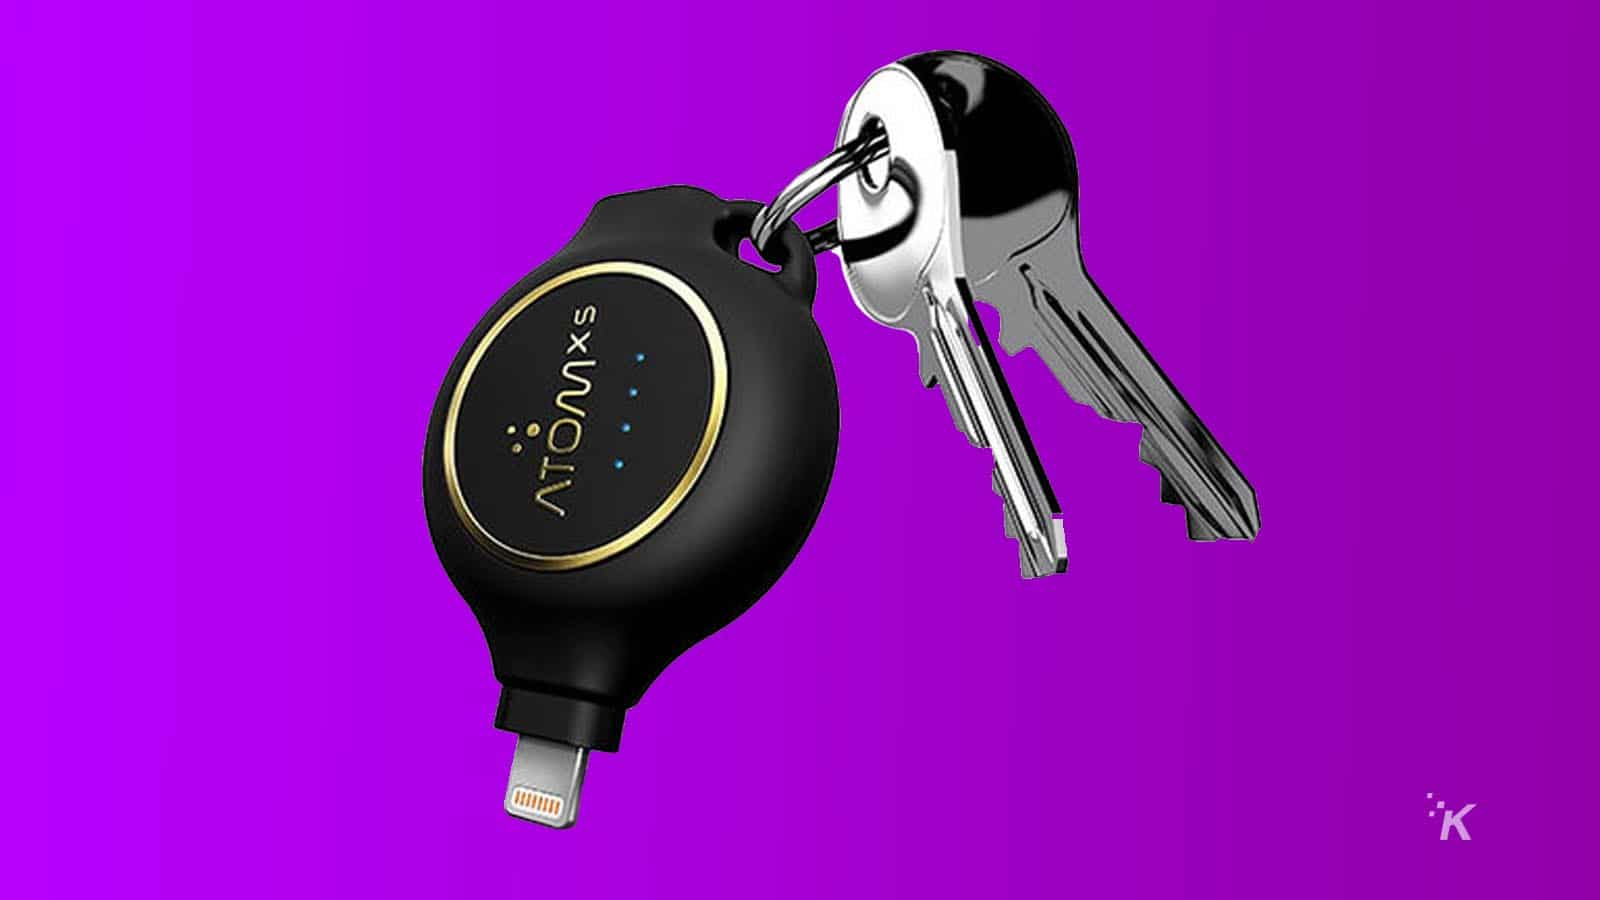 atomx3 keychain charger